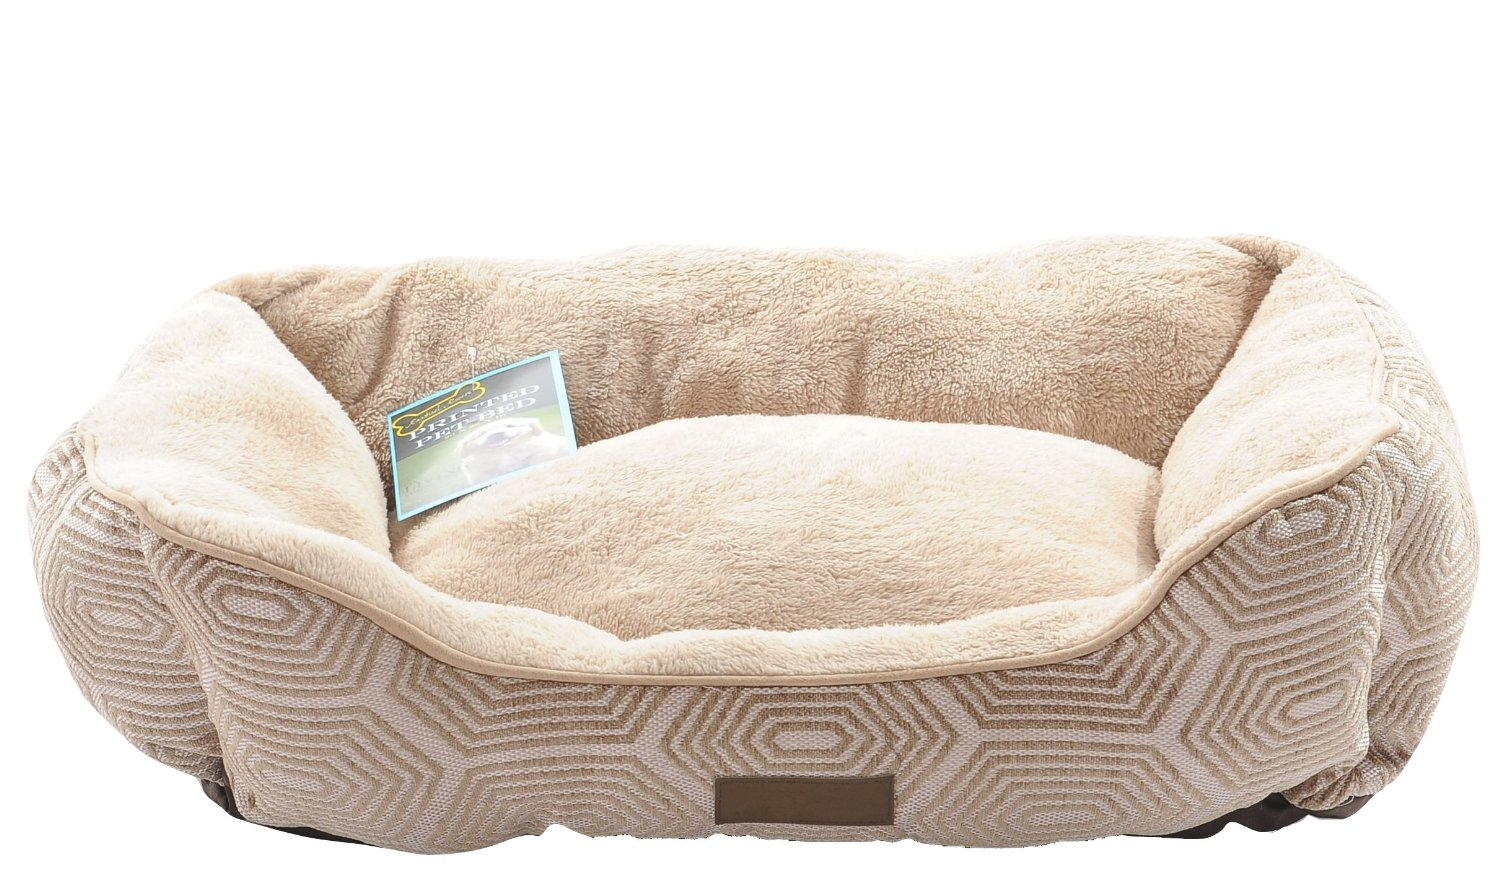 Not Just Another Southern Gal Comfy Pooch Plush Soft Pet Bed Review